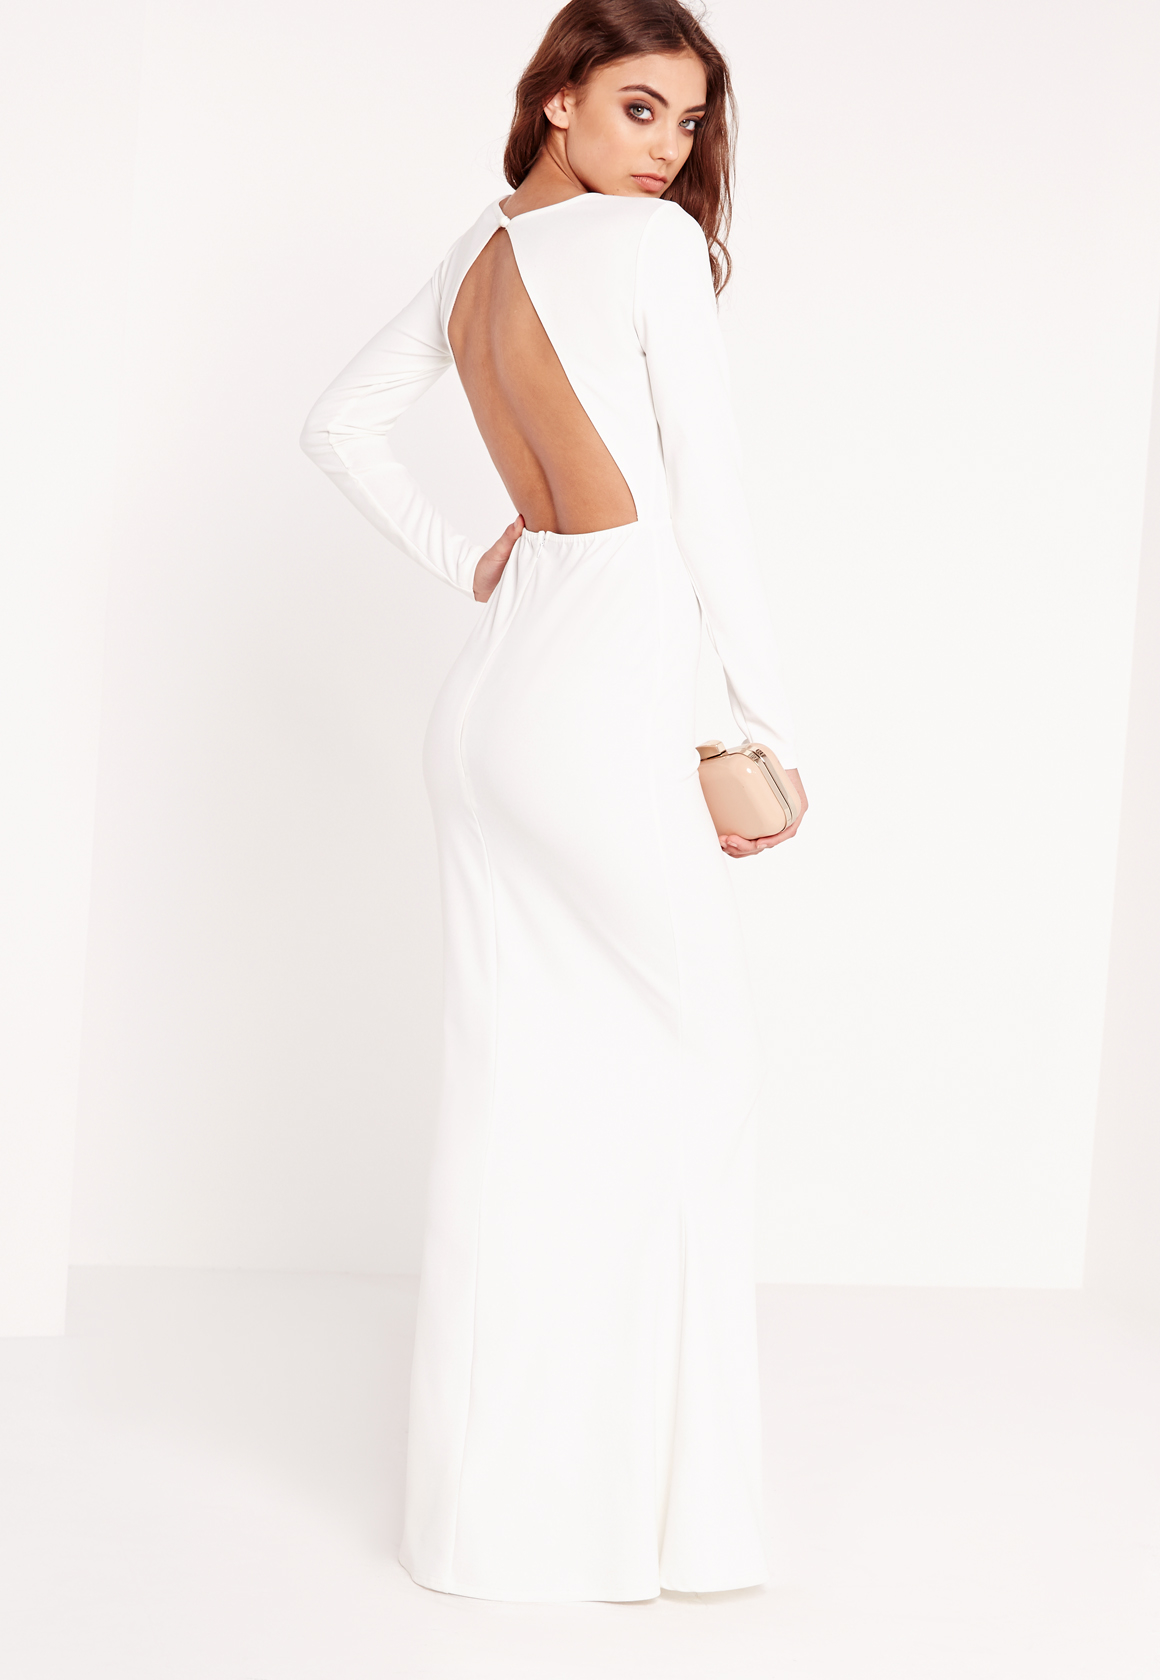 Lyst - Missguided Long Sleeve Open Back Maxi Dress White in White